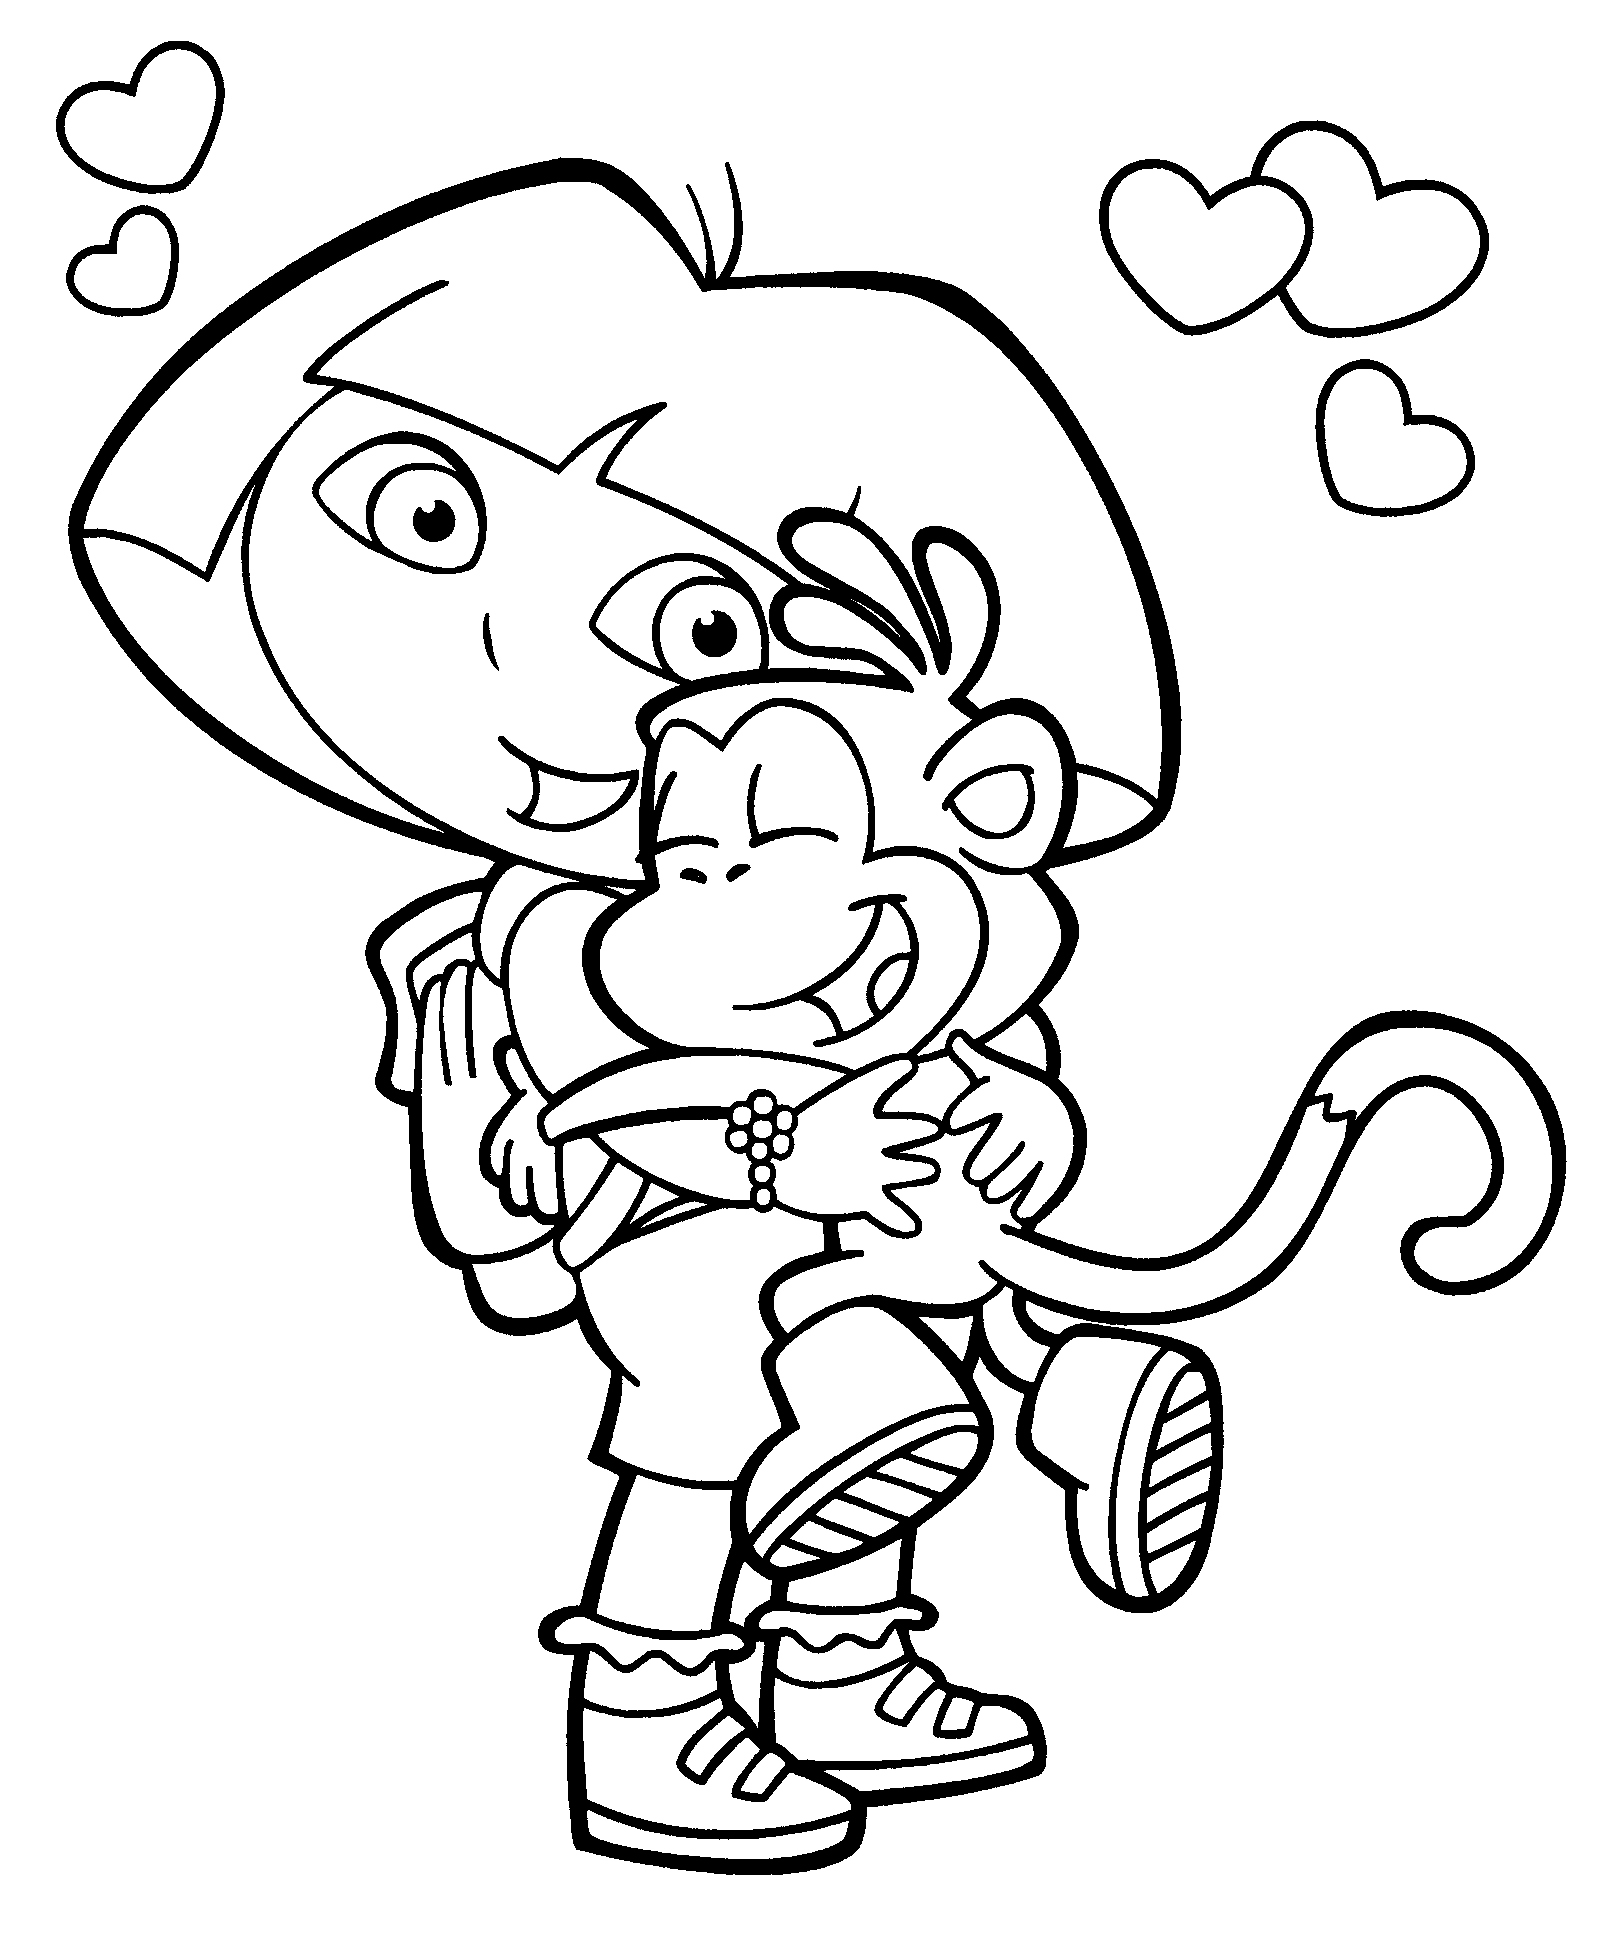 nichelodian coloring pages - photo#26